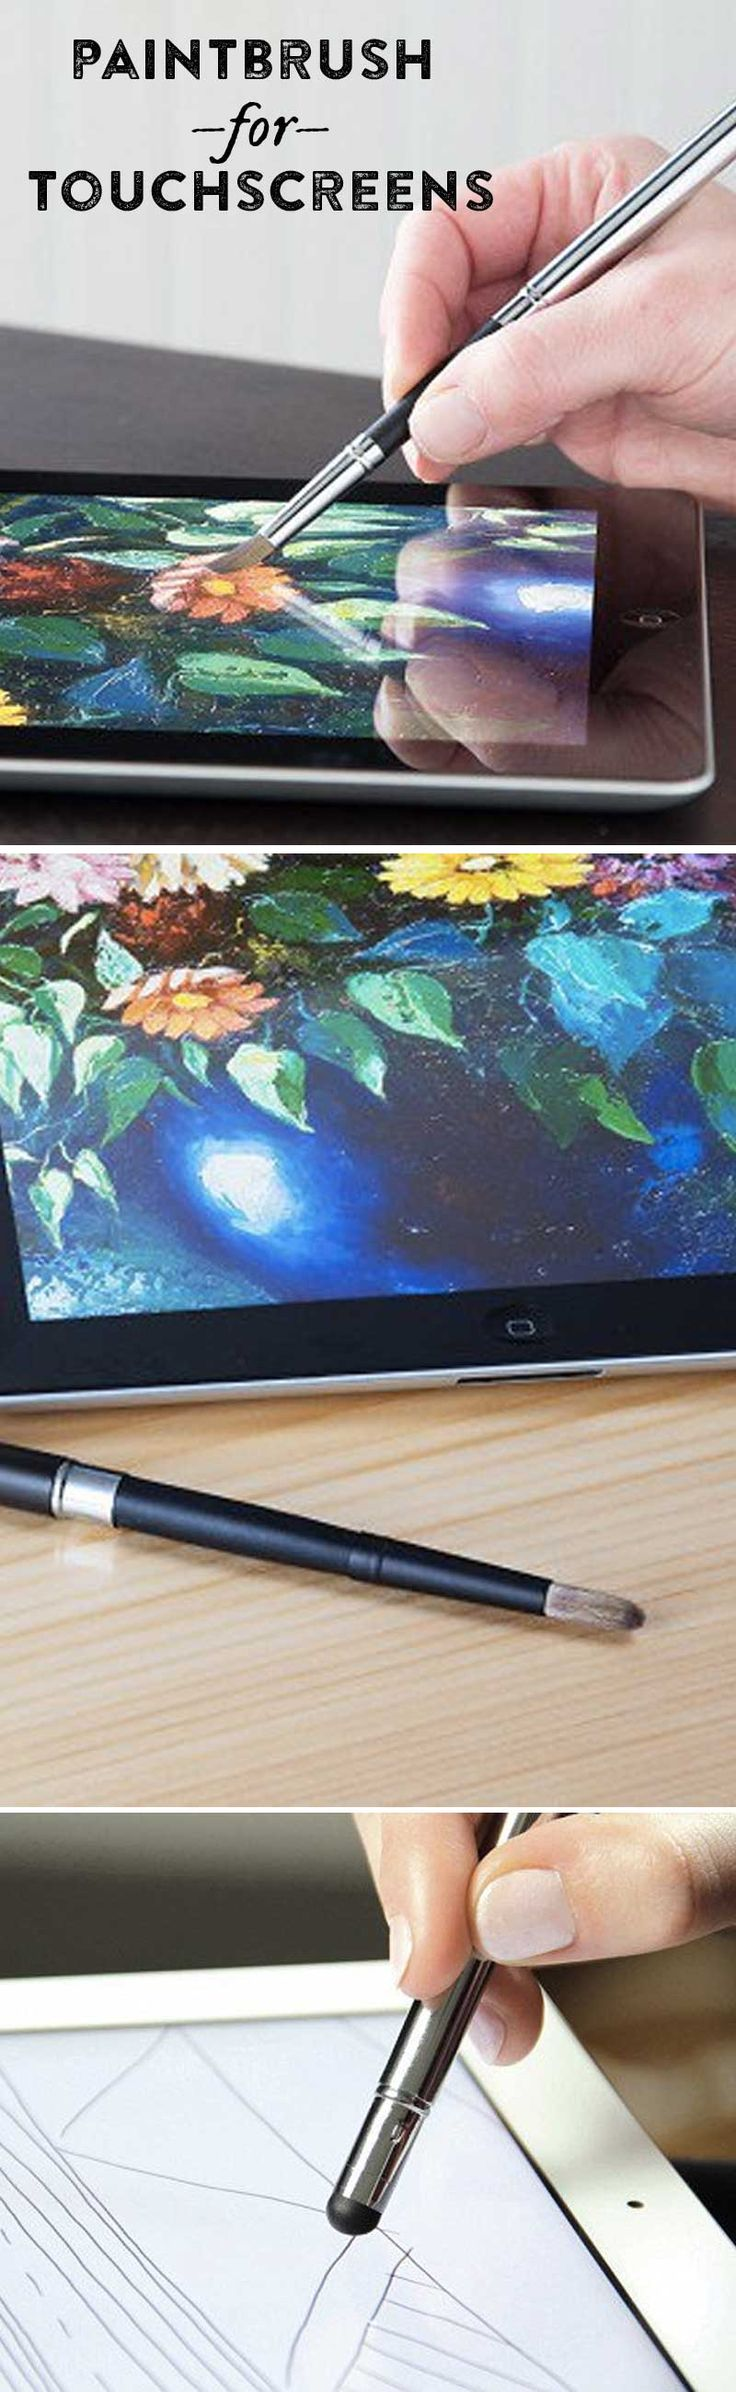 This Digital Paintbrush Truly Captures The Tactile Experience Of Paintingu2014itu0027s  Like A Stylus For